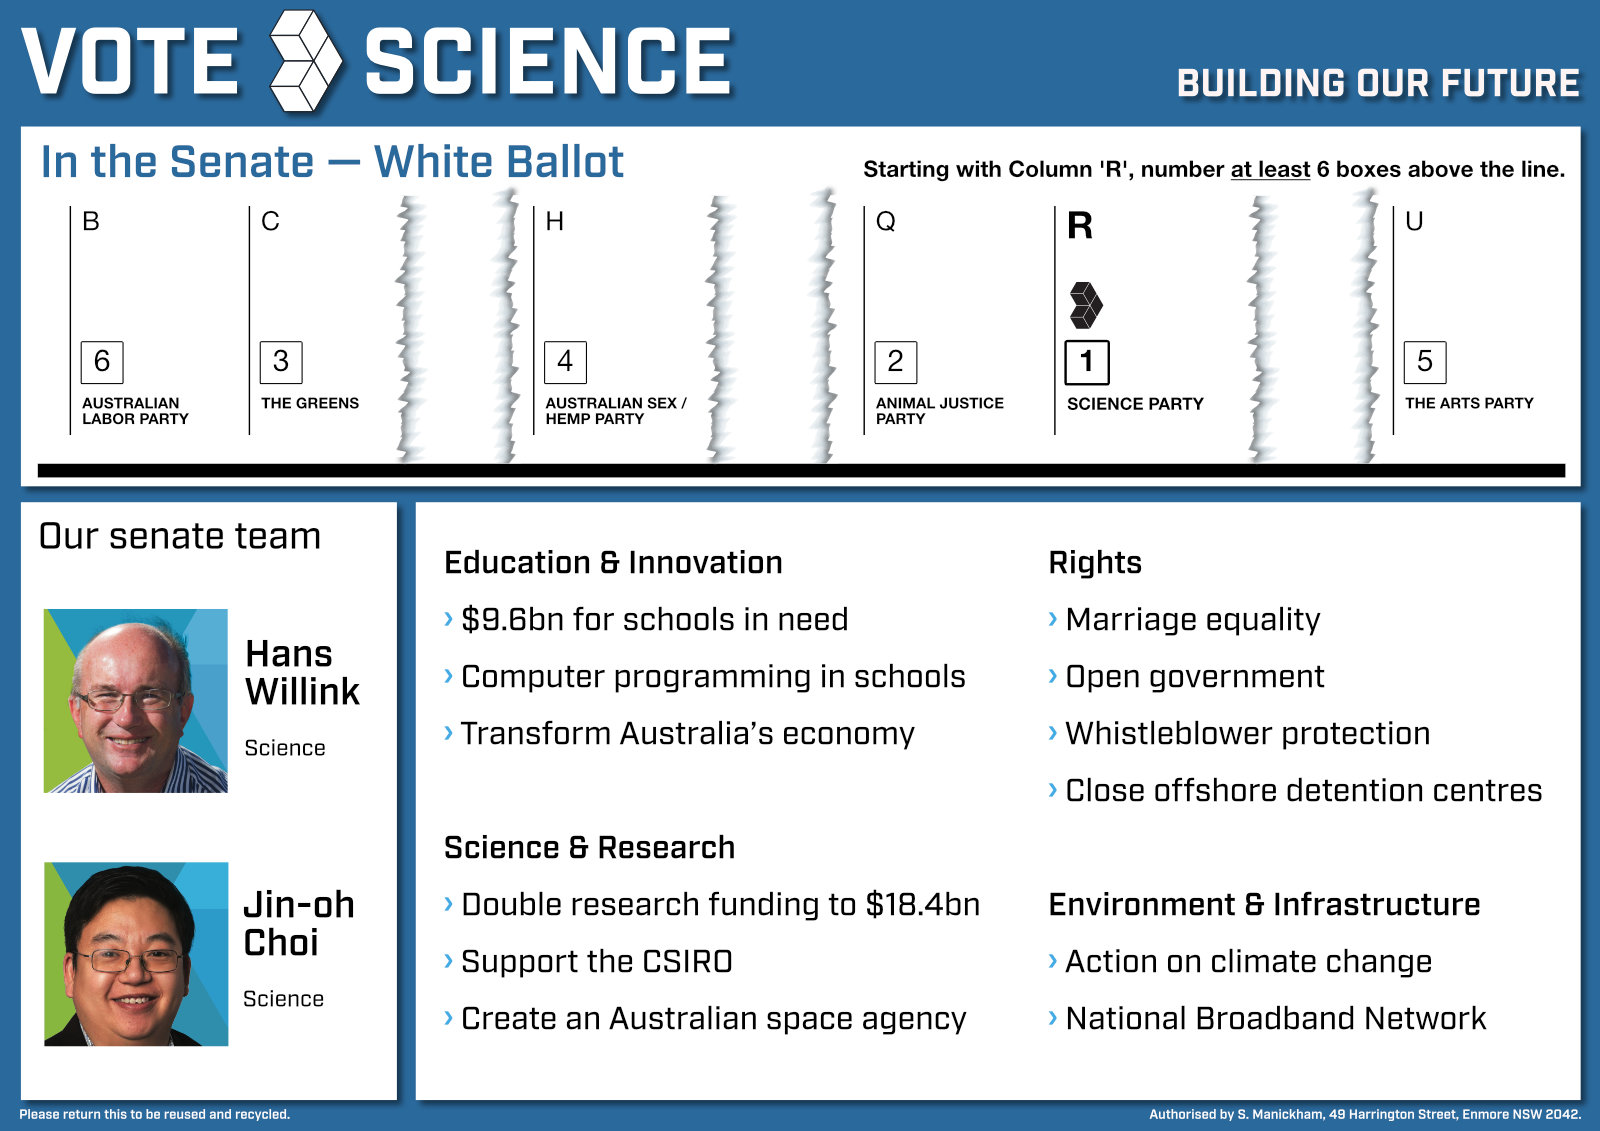 how to vote Science in Tasmania